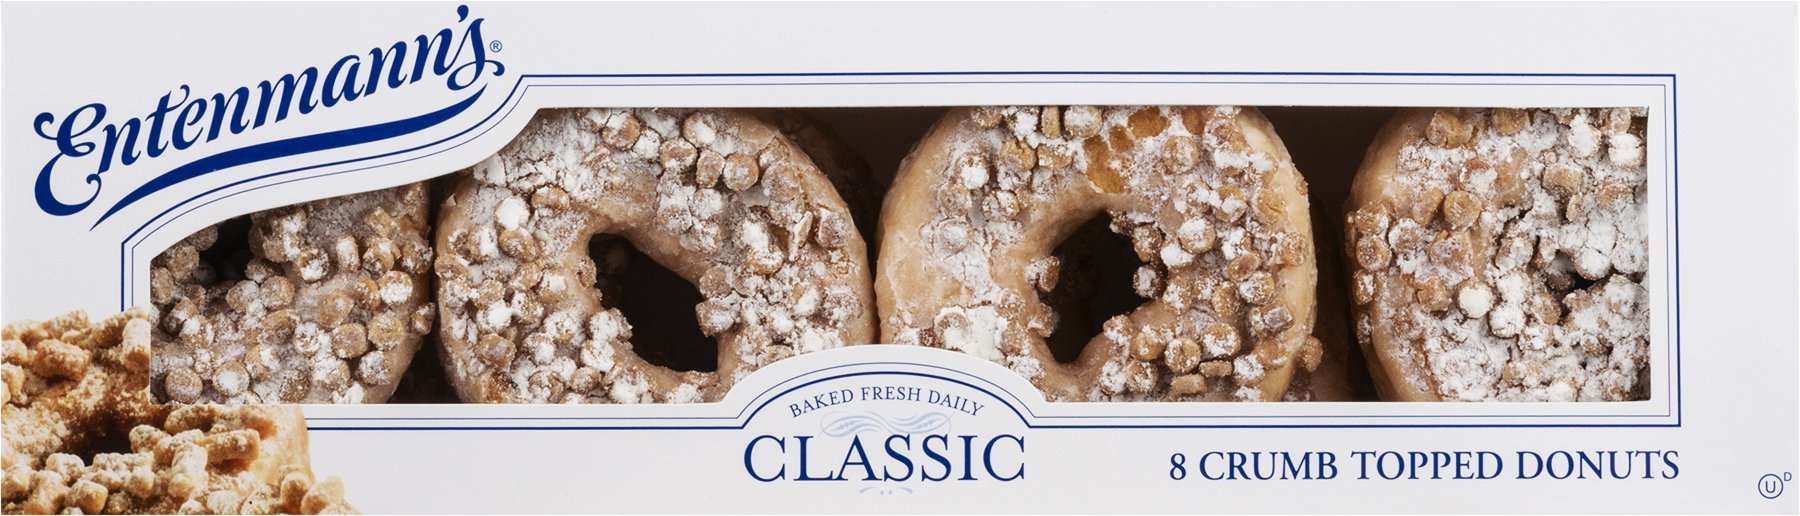 Entenmann's Classic Crumb Topped Donuts - 8 CT